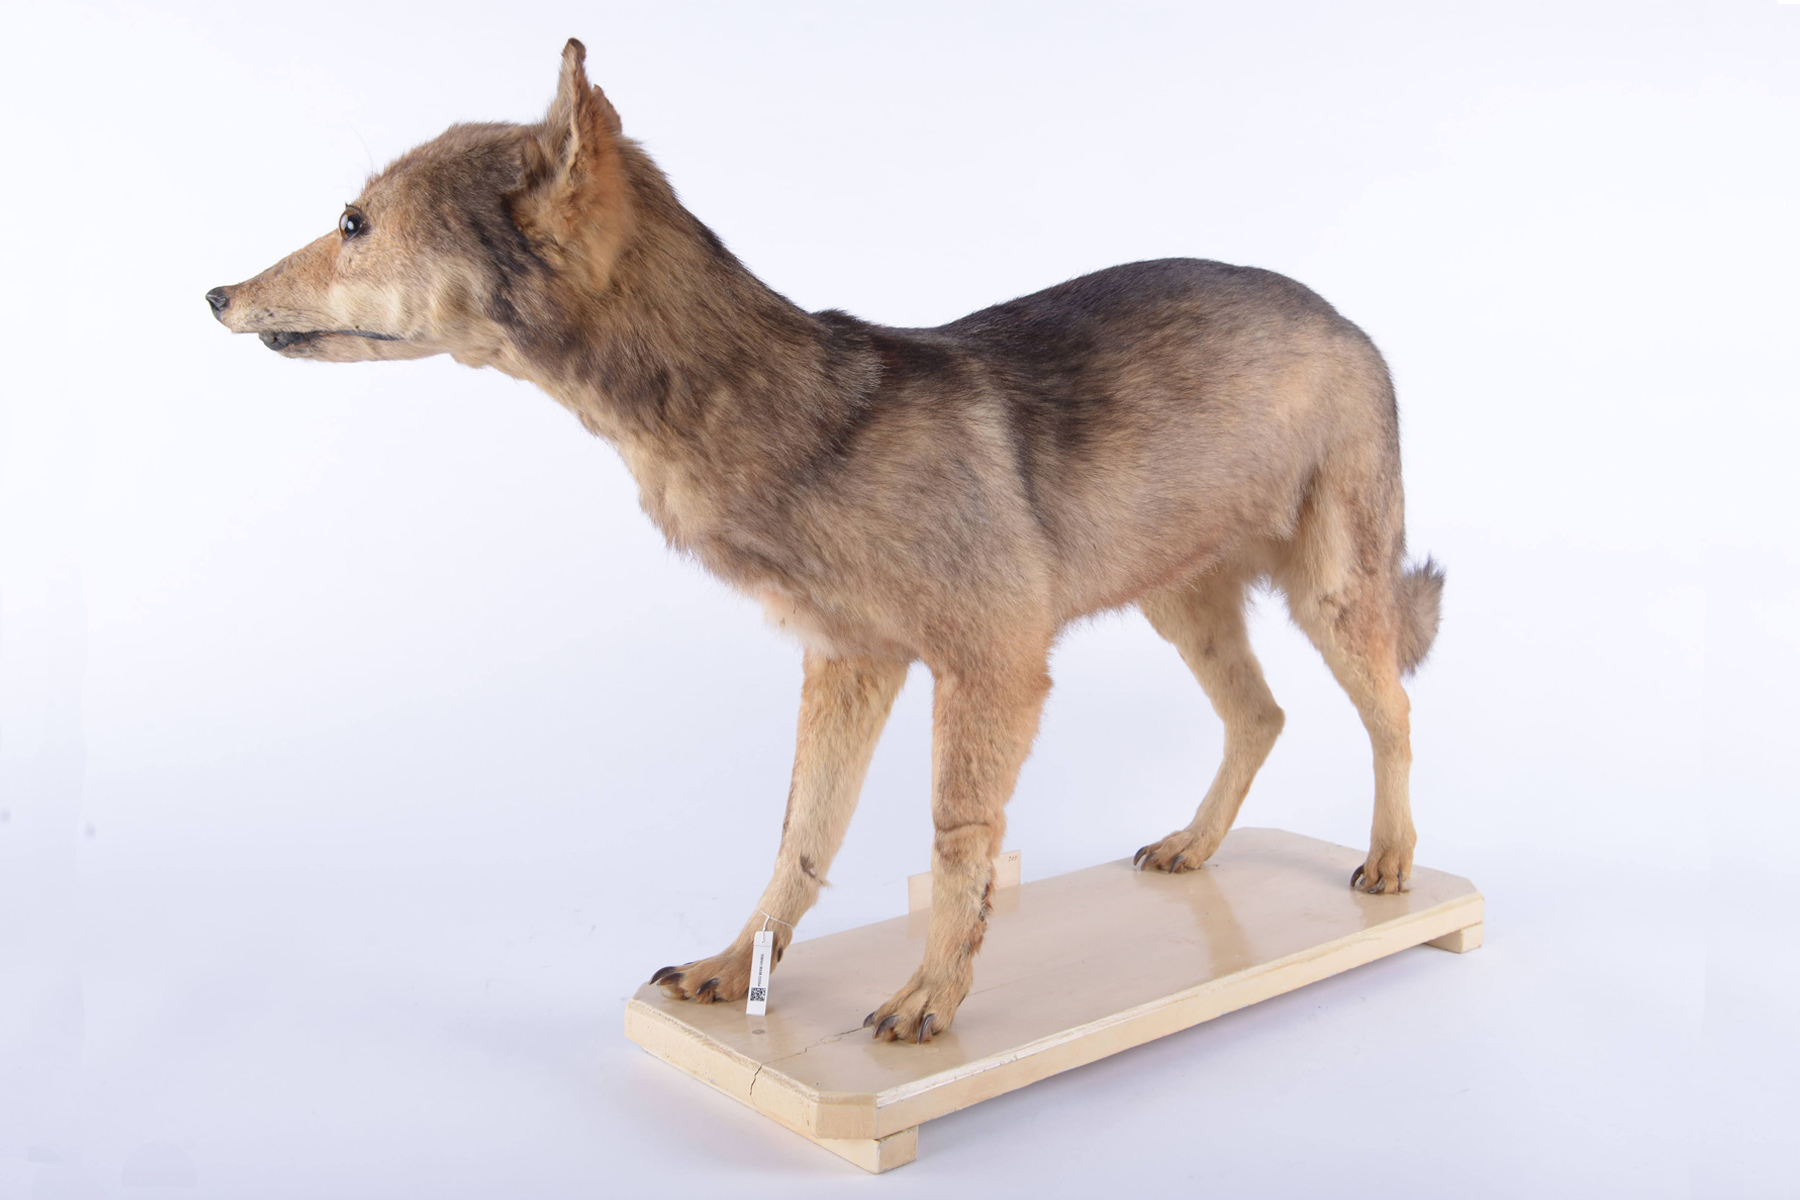 Siebold's mounted specimen of the Japanese wolf, stored at the Naturalis Biodiversity Center in Leiden, the Netherlands | COURTESY OF THE NATURALIS BIODIVERSITY CENTER, THE NETHERLANDS